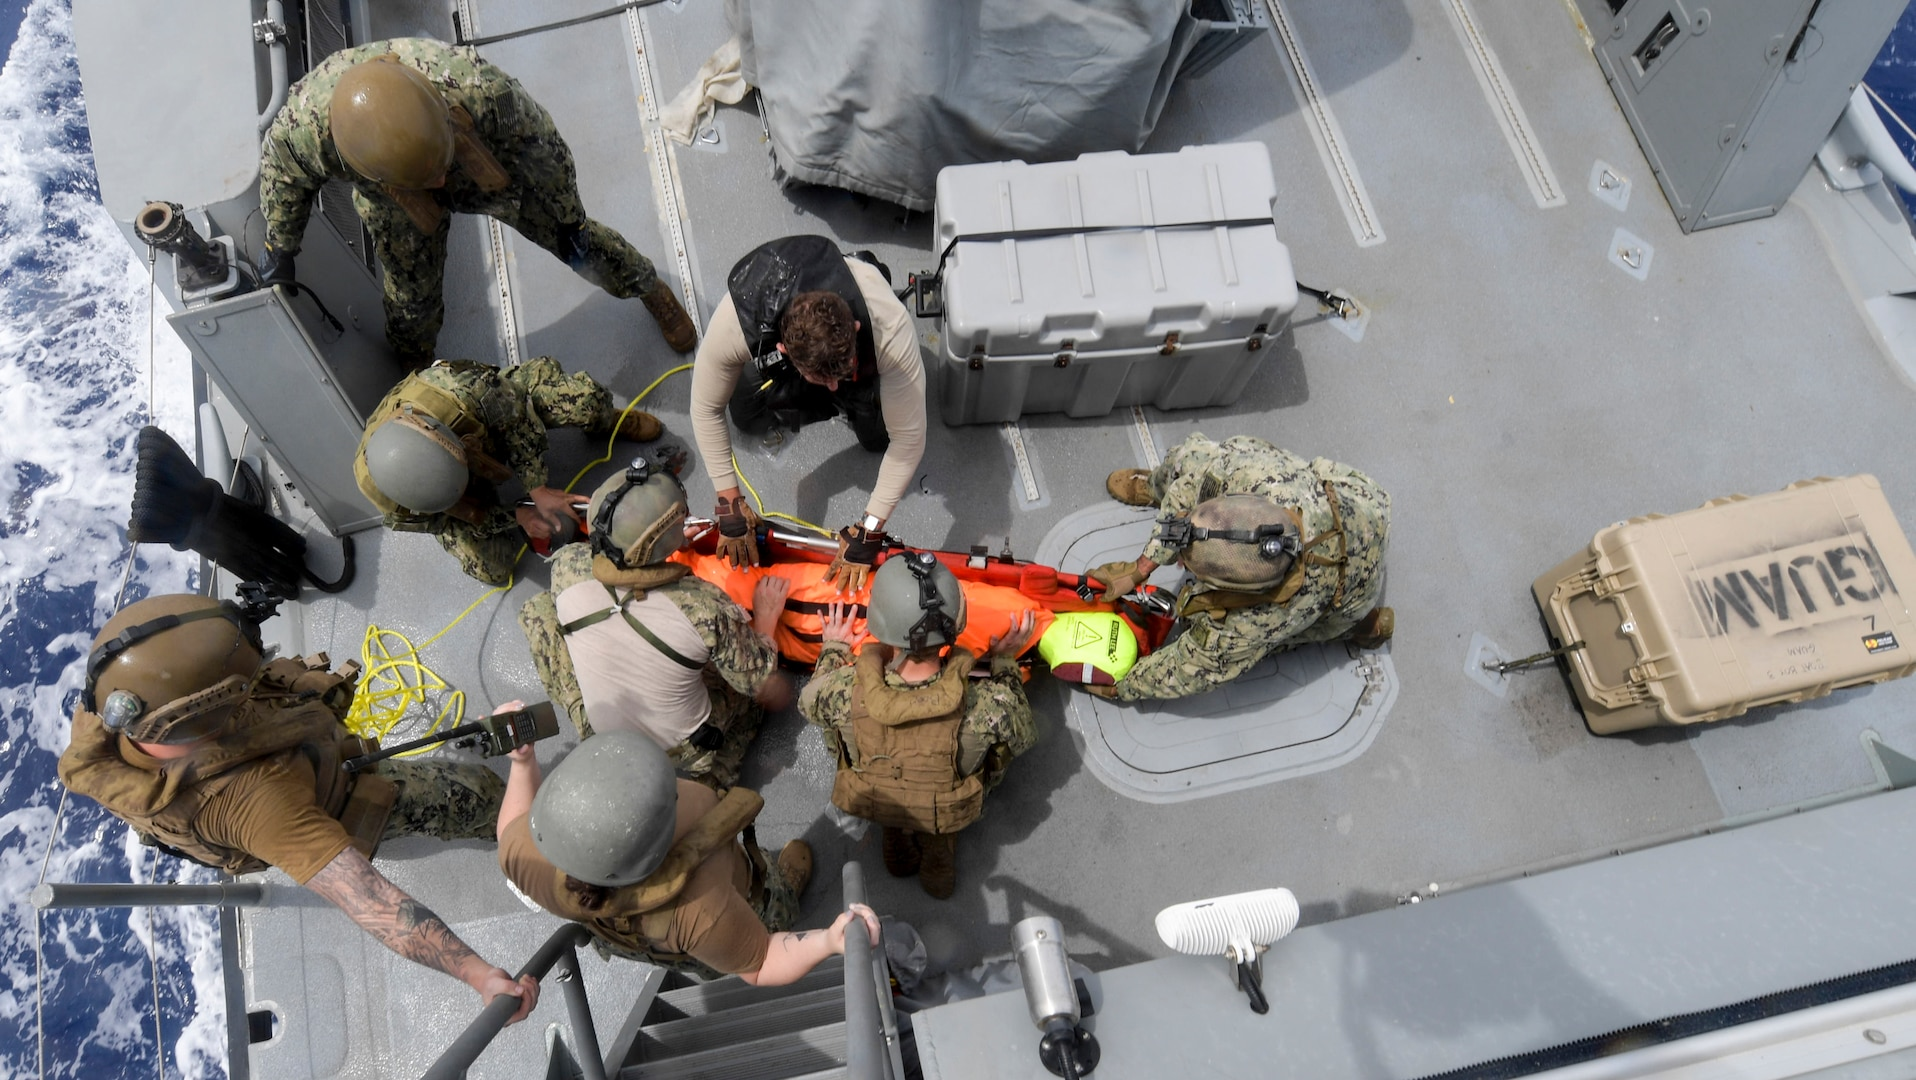 Coastal Riverine Squadron (CRS) 4, Det. Guam and Helicopter Sea Combat Squadron (HSC) 25 Sailors load a search and rescue (SAR) dummy onto a litter aboard a Mark VI patrol boat during a joint SAR exercise with U.S. Coast Guard Sector Guam, Feb. 23, 2018.